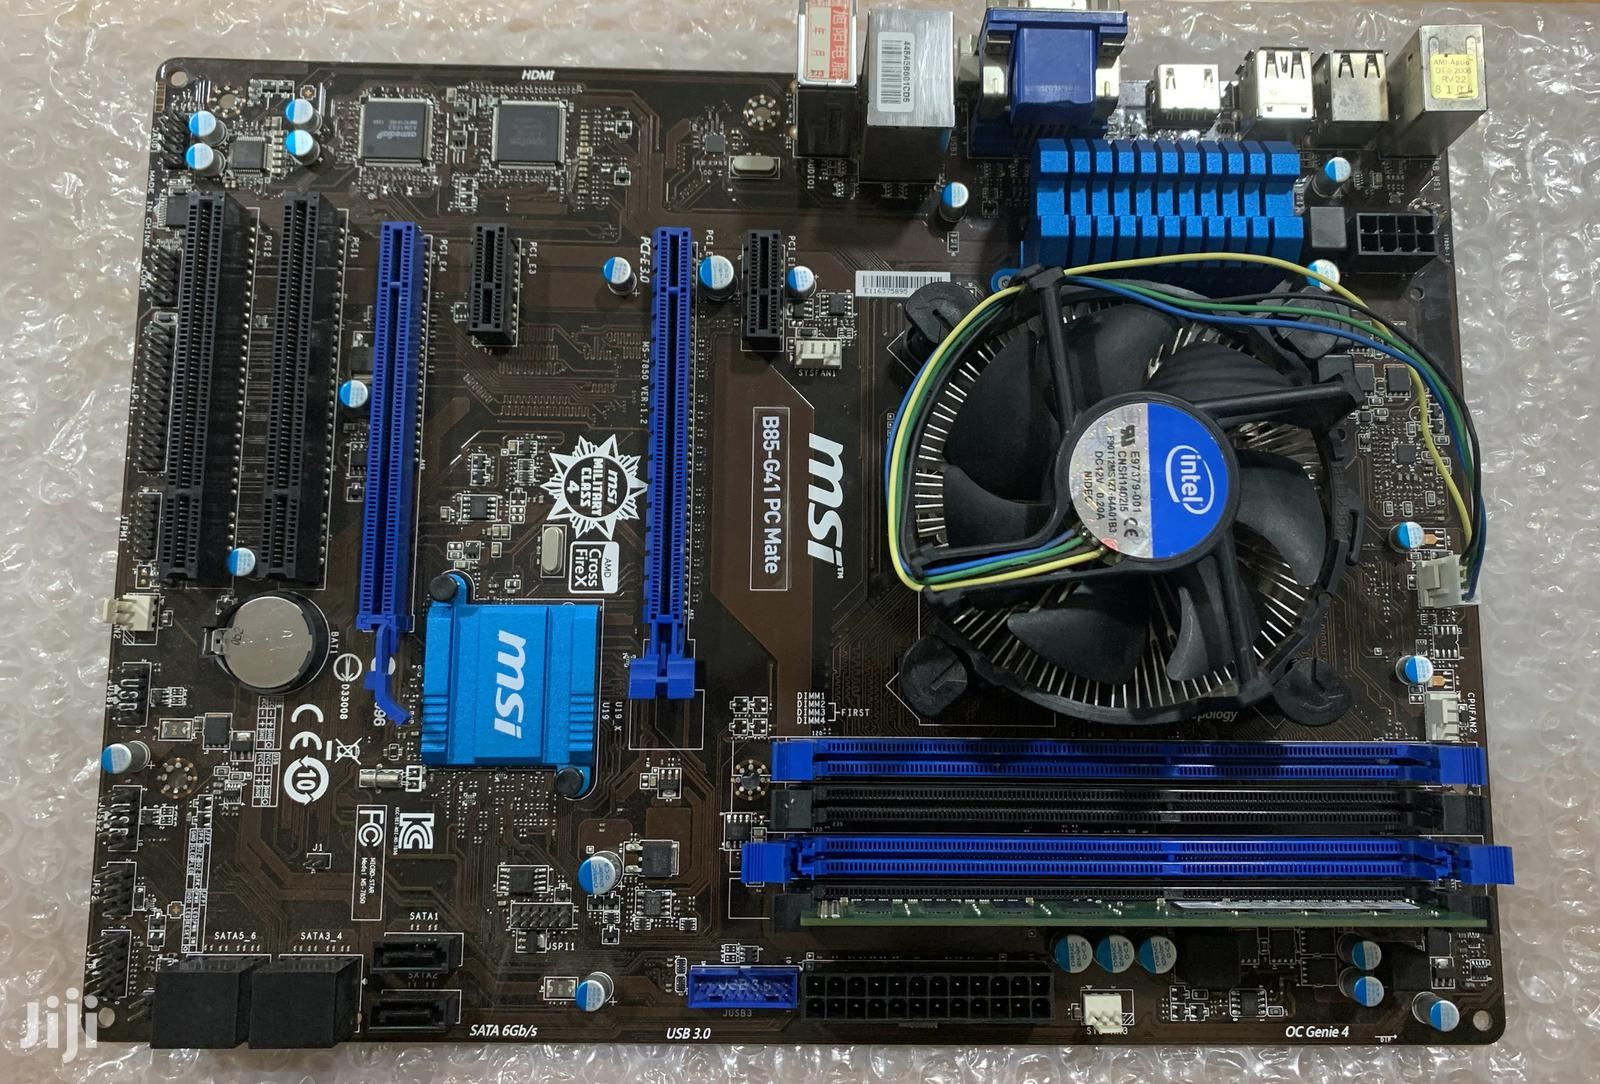 4th Gen Mobo And I5 CPU